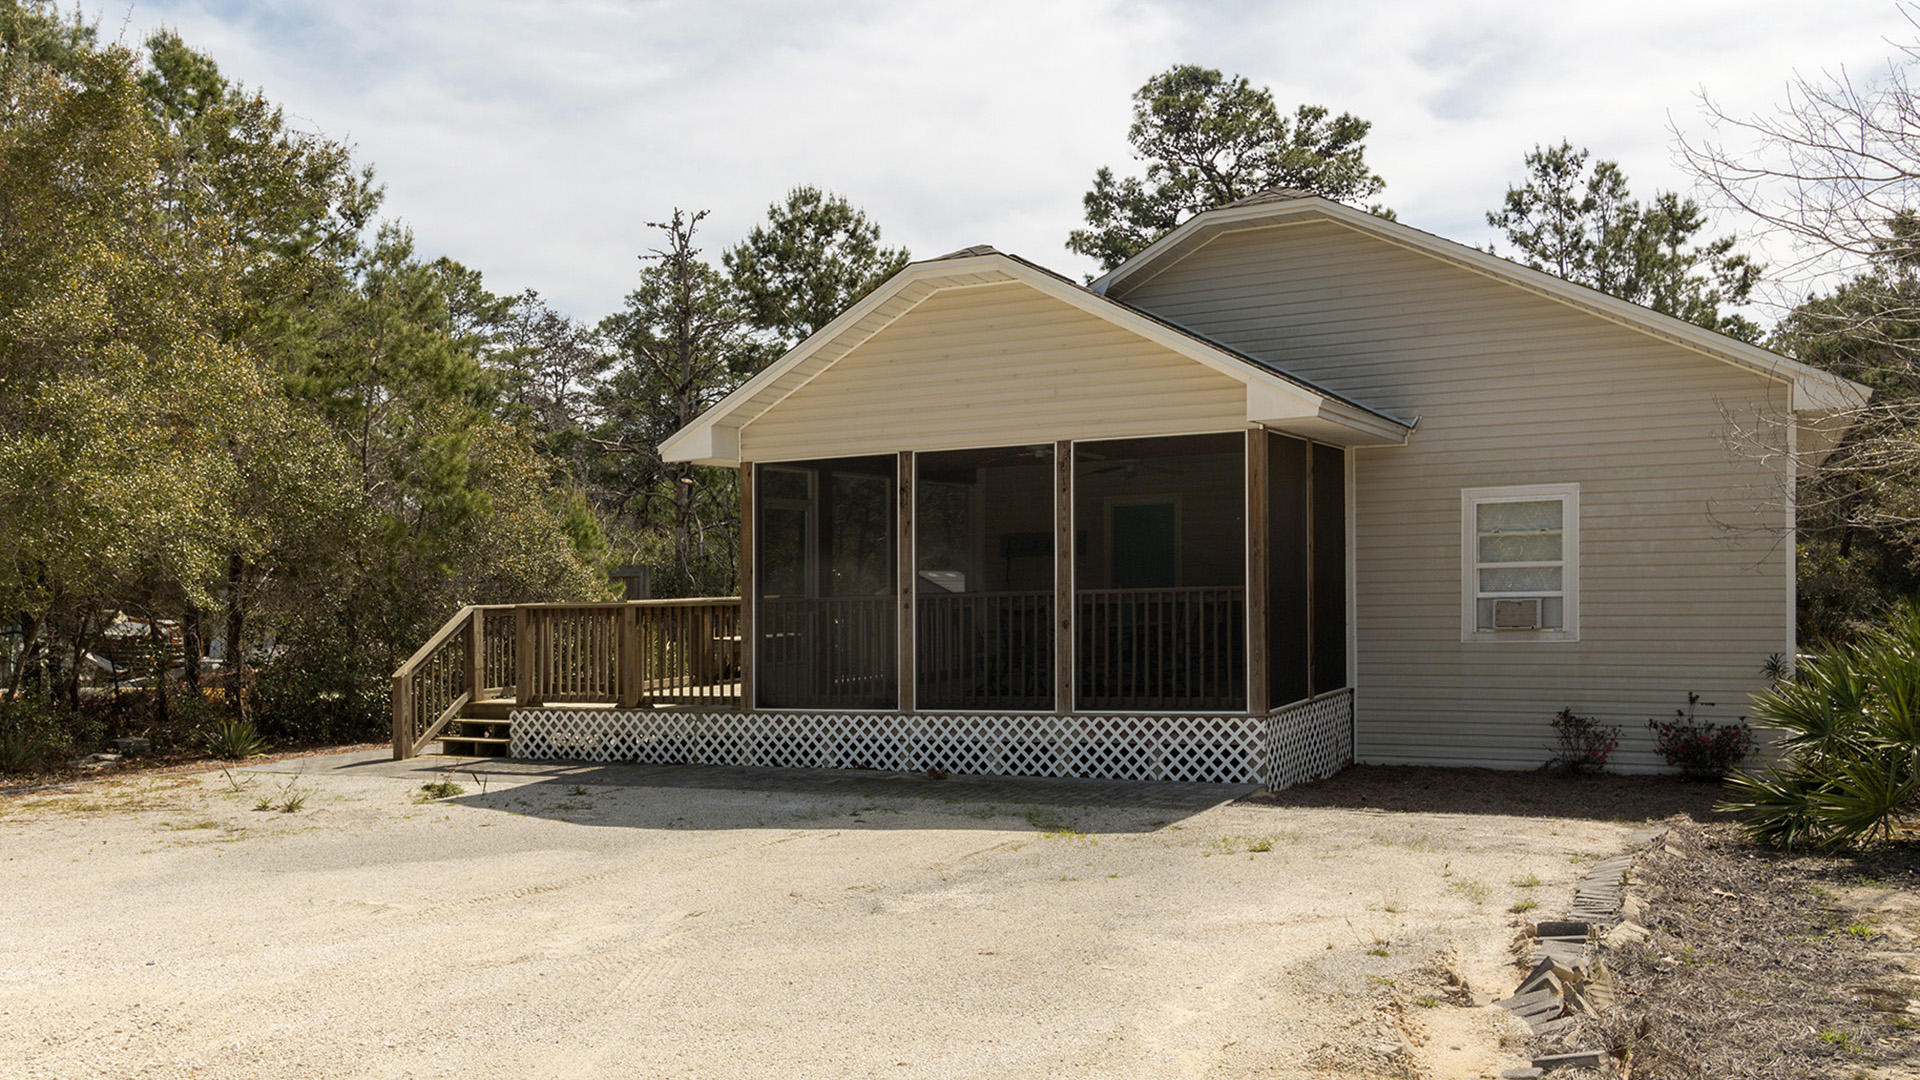 Santa Rosa Beach Real Estate Listing, featured MLS property E793385